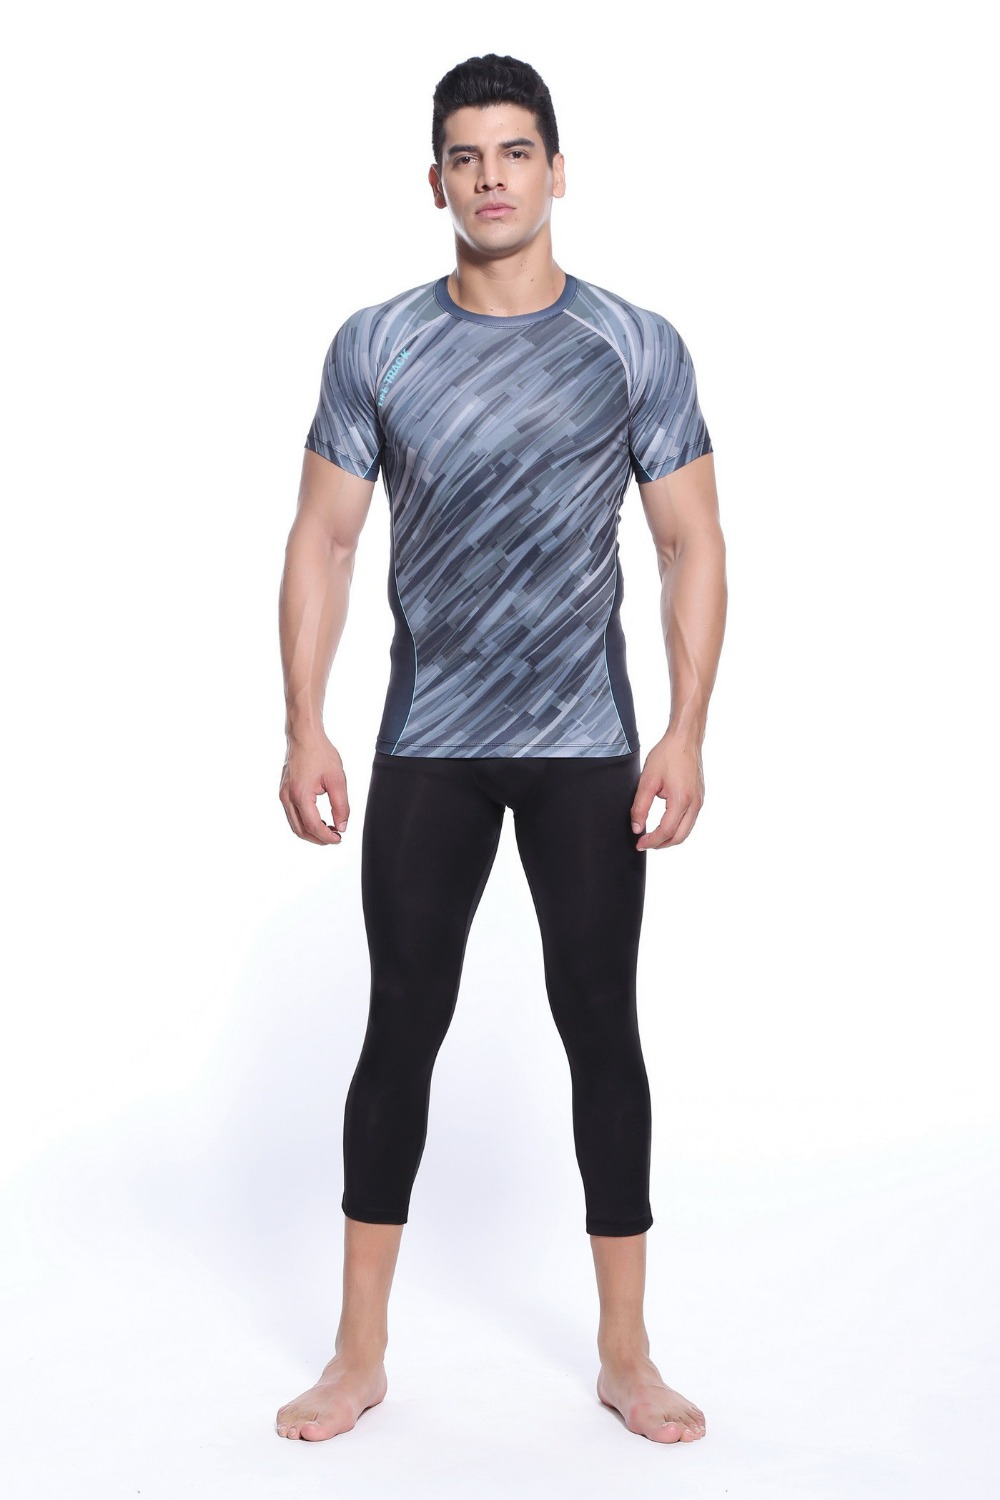 The unique cooling effect of wicking technology makes this apparel ideal for sports, exercising, or everyday wear. Browse custom athletic shirts, team jerseys, warm-ups, tanks, polos, caps and more from top brands like Adidas, Champion, Nike Golf, Ogio and Russell Athletic.